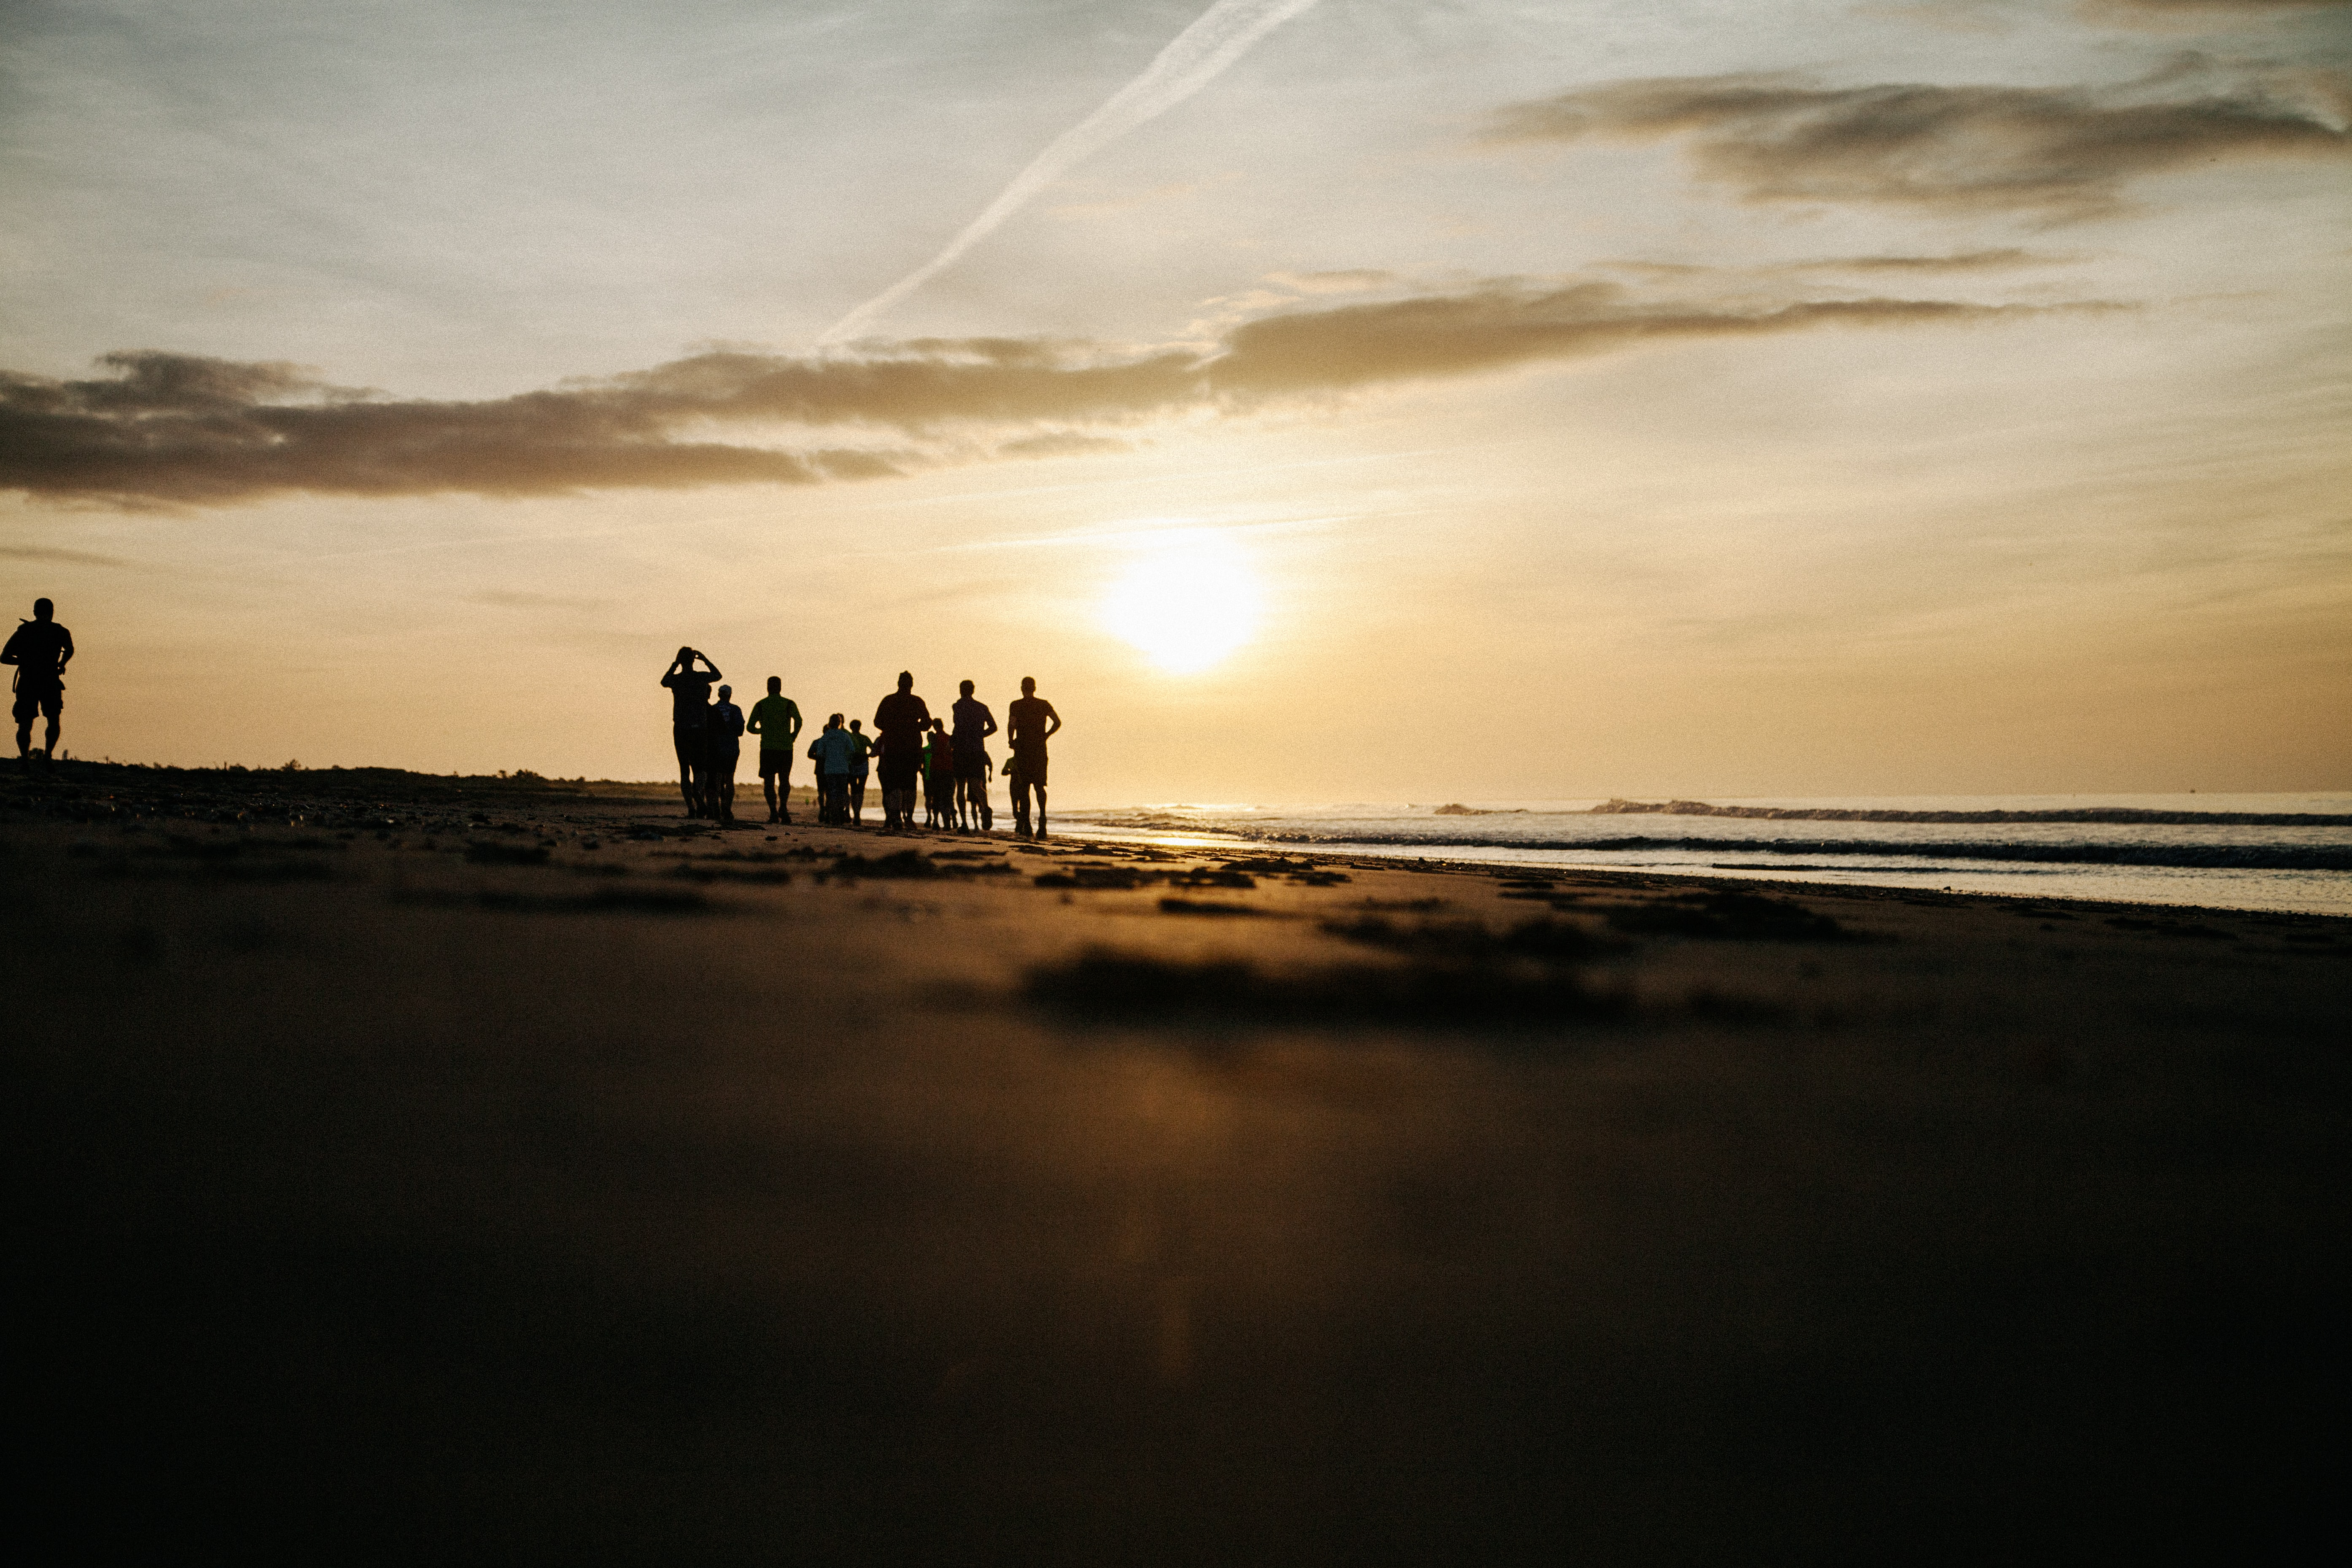 silhouette of people at seashore